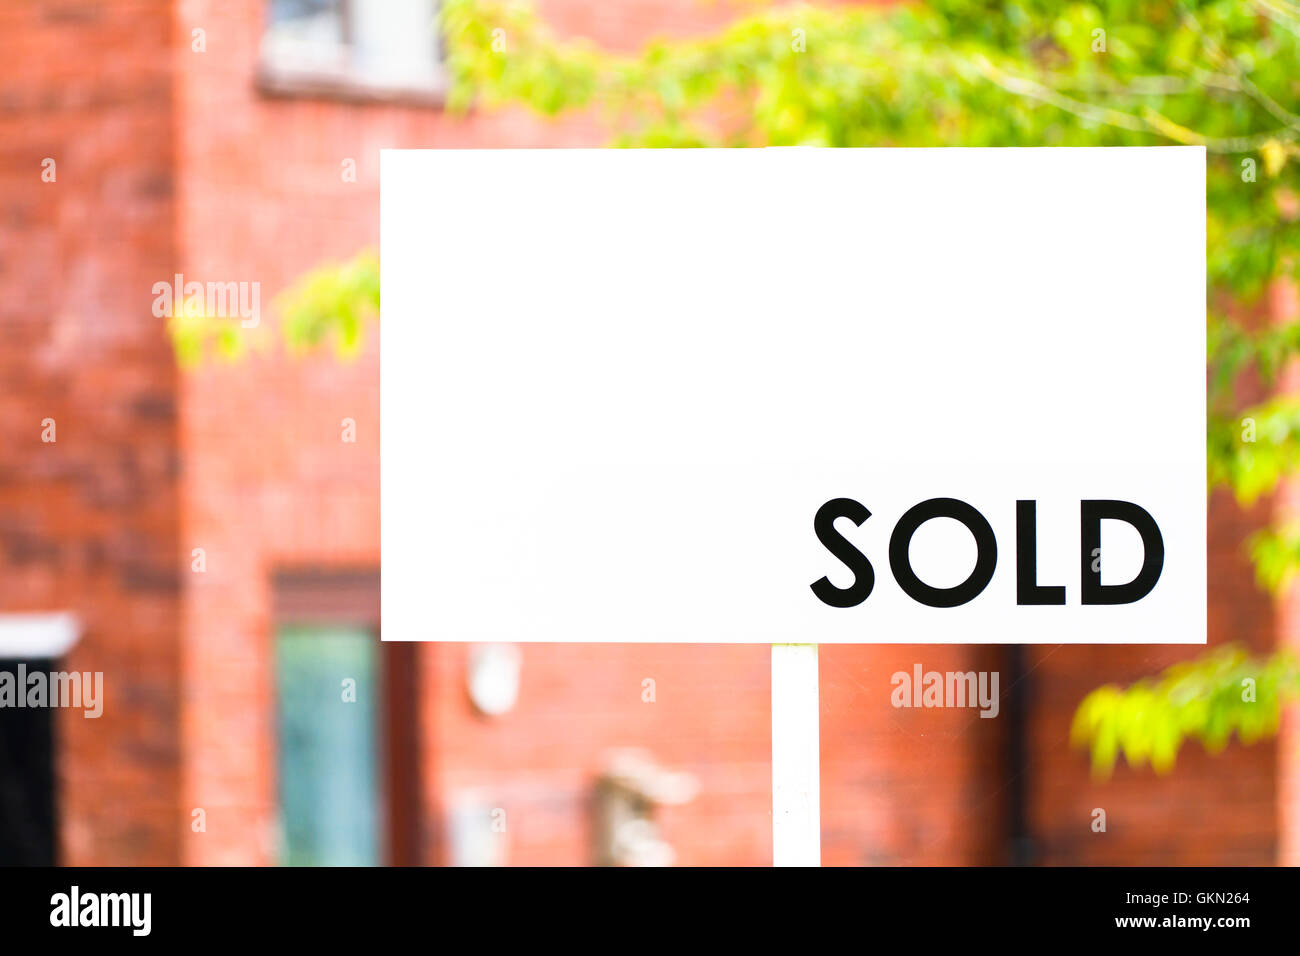 Estate agent house sold sign with shallow depth of focus - Stock Image